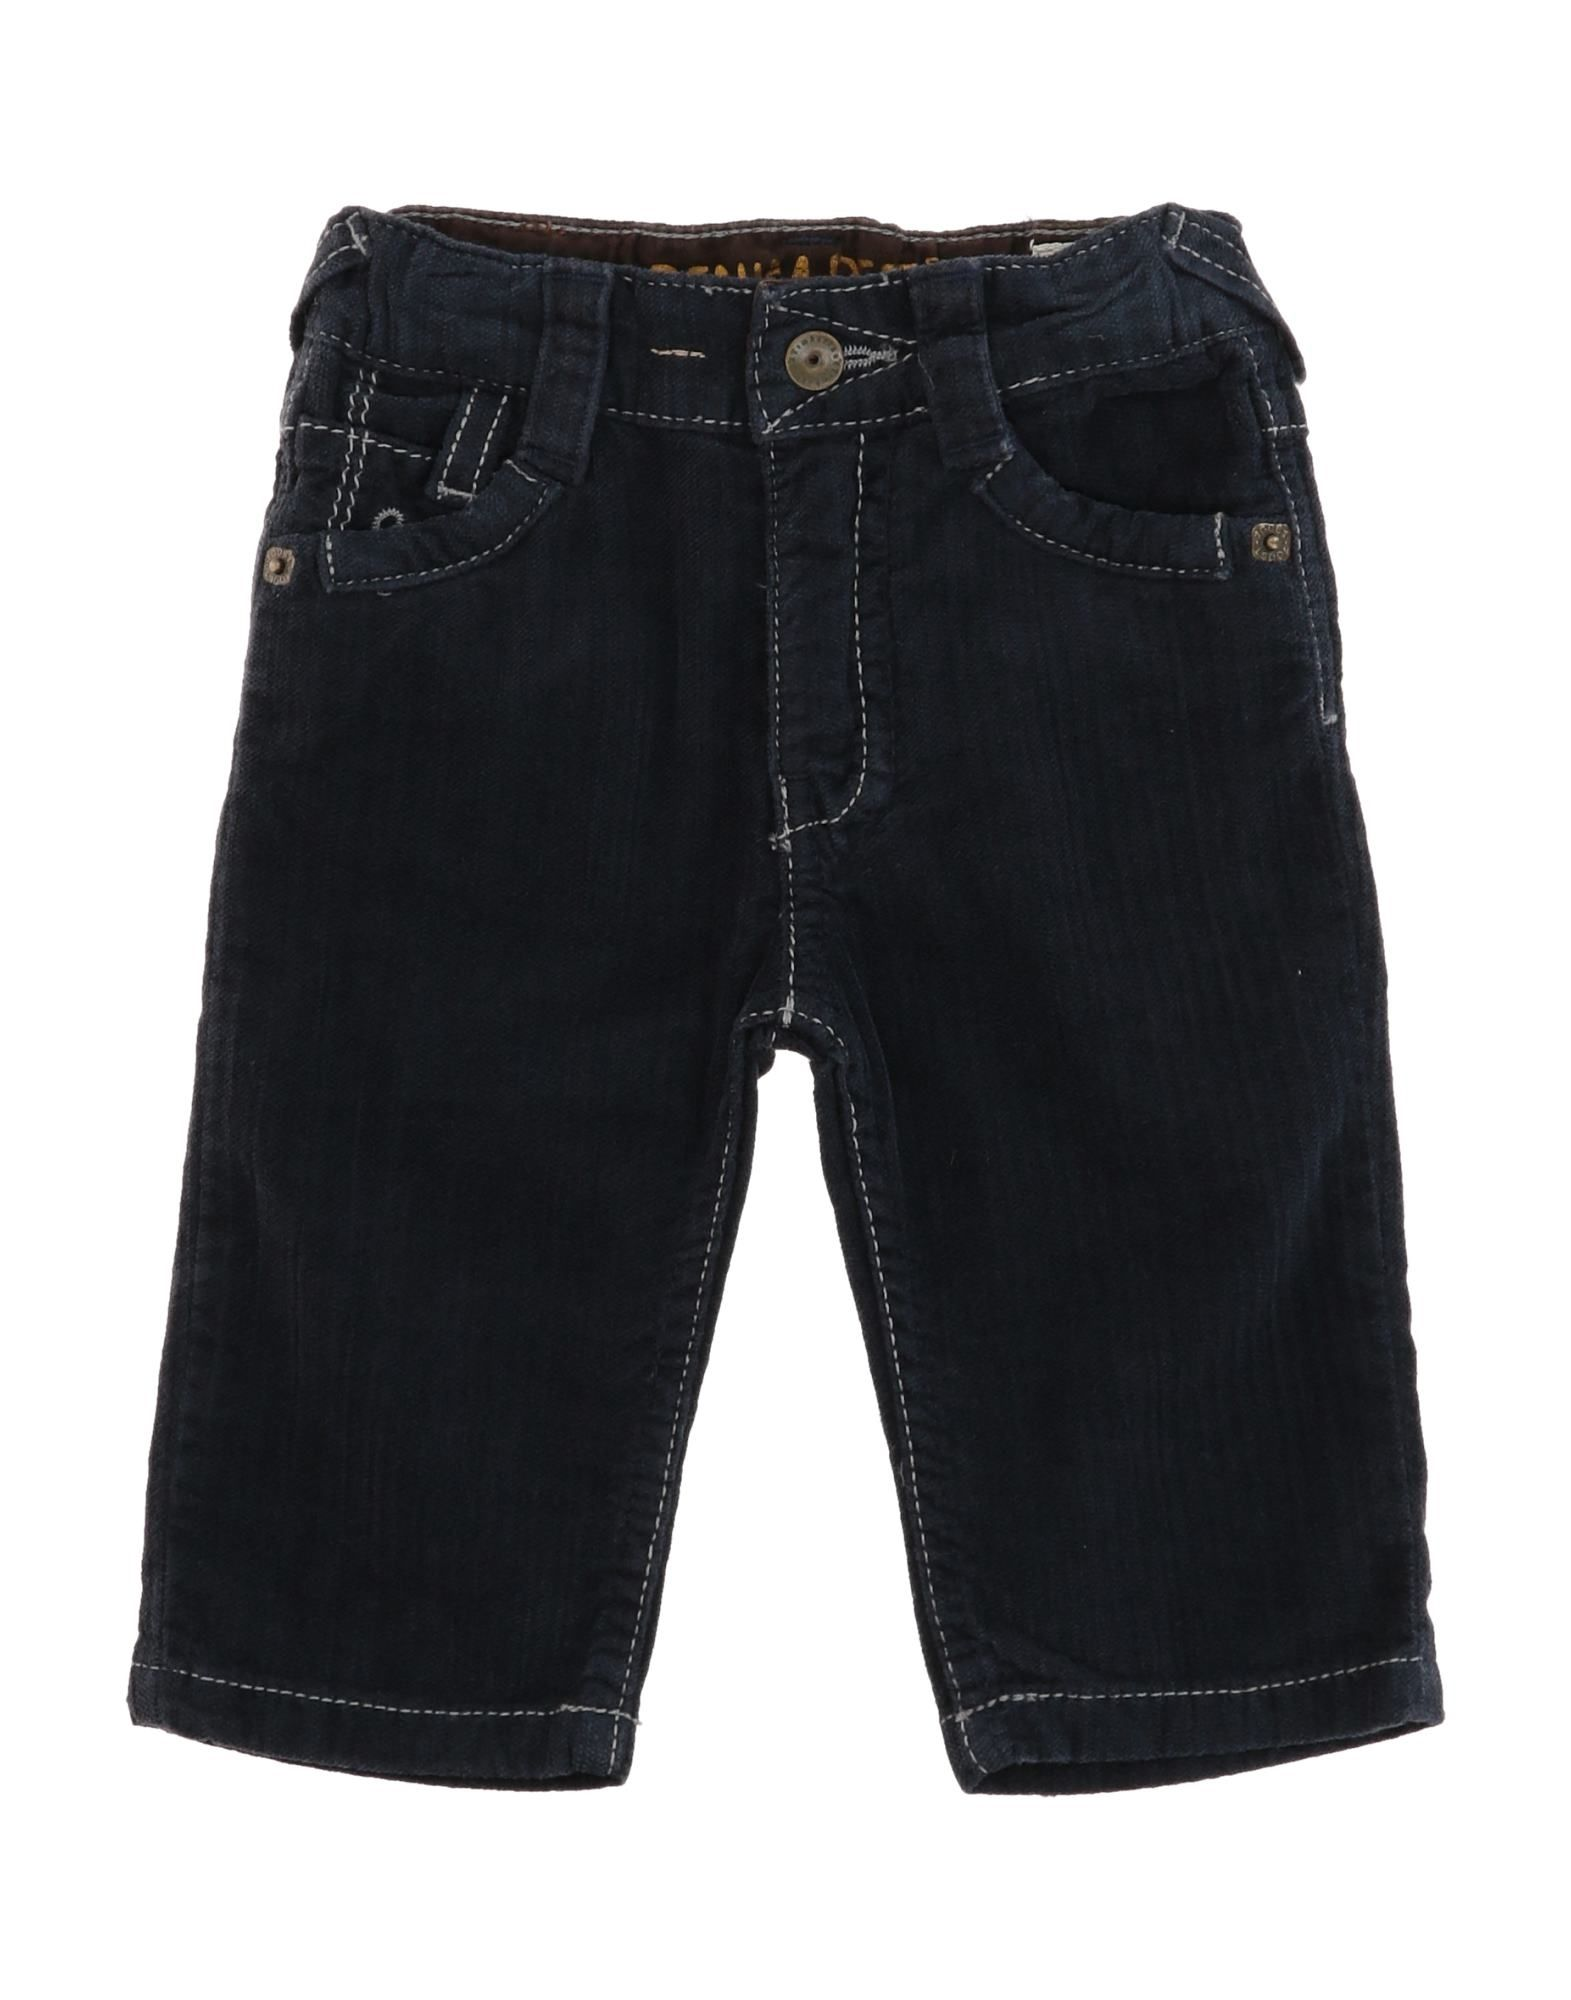 Timberland Kids' Casual Pants In Black